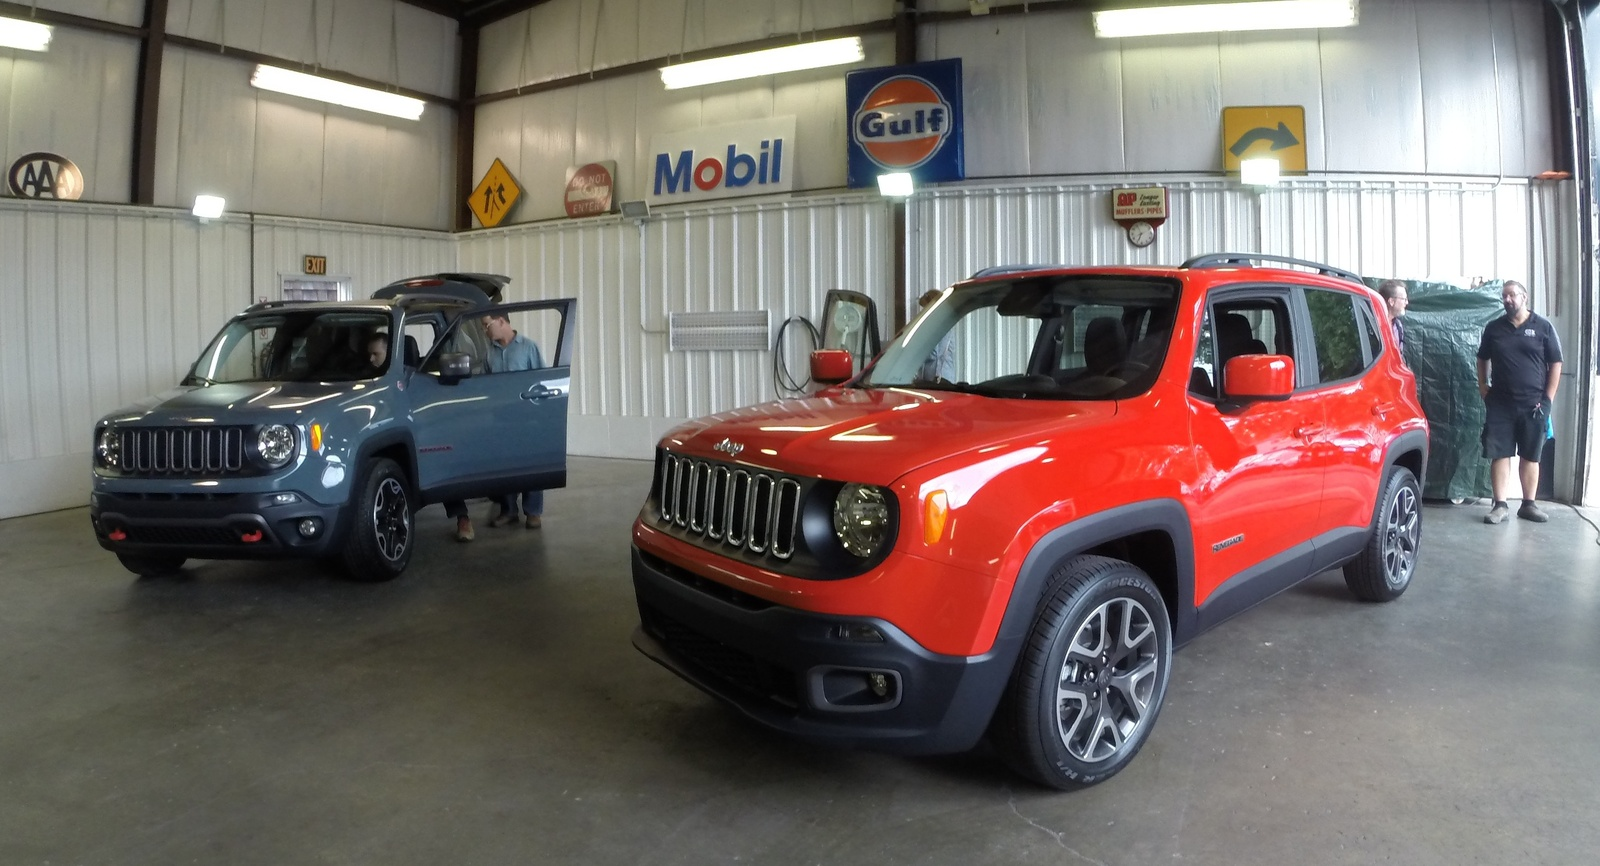 The Jeep Renegade Trailhawk (blue) and Latitude (red)